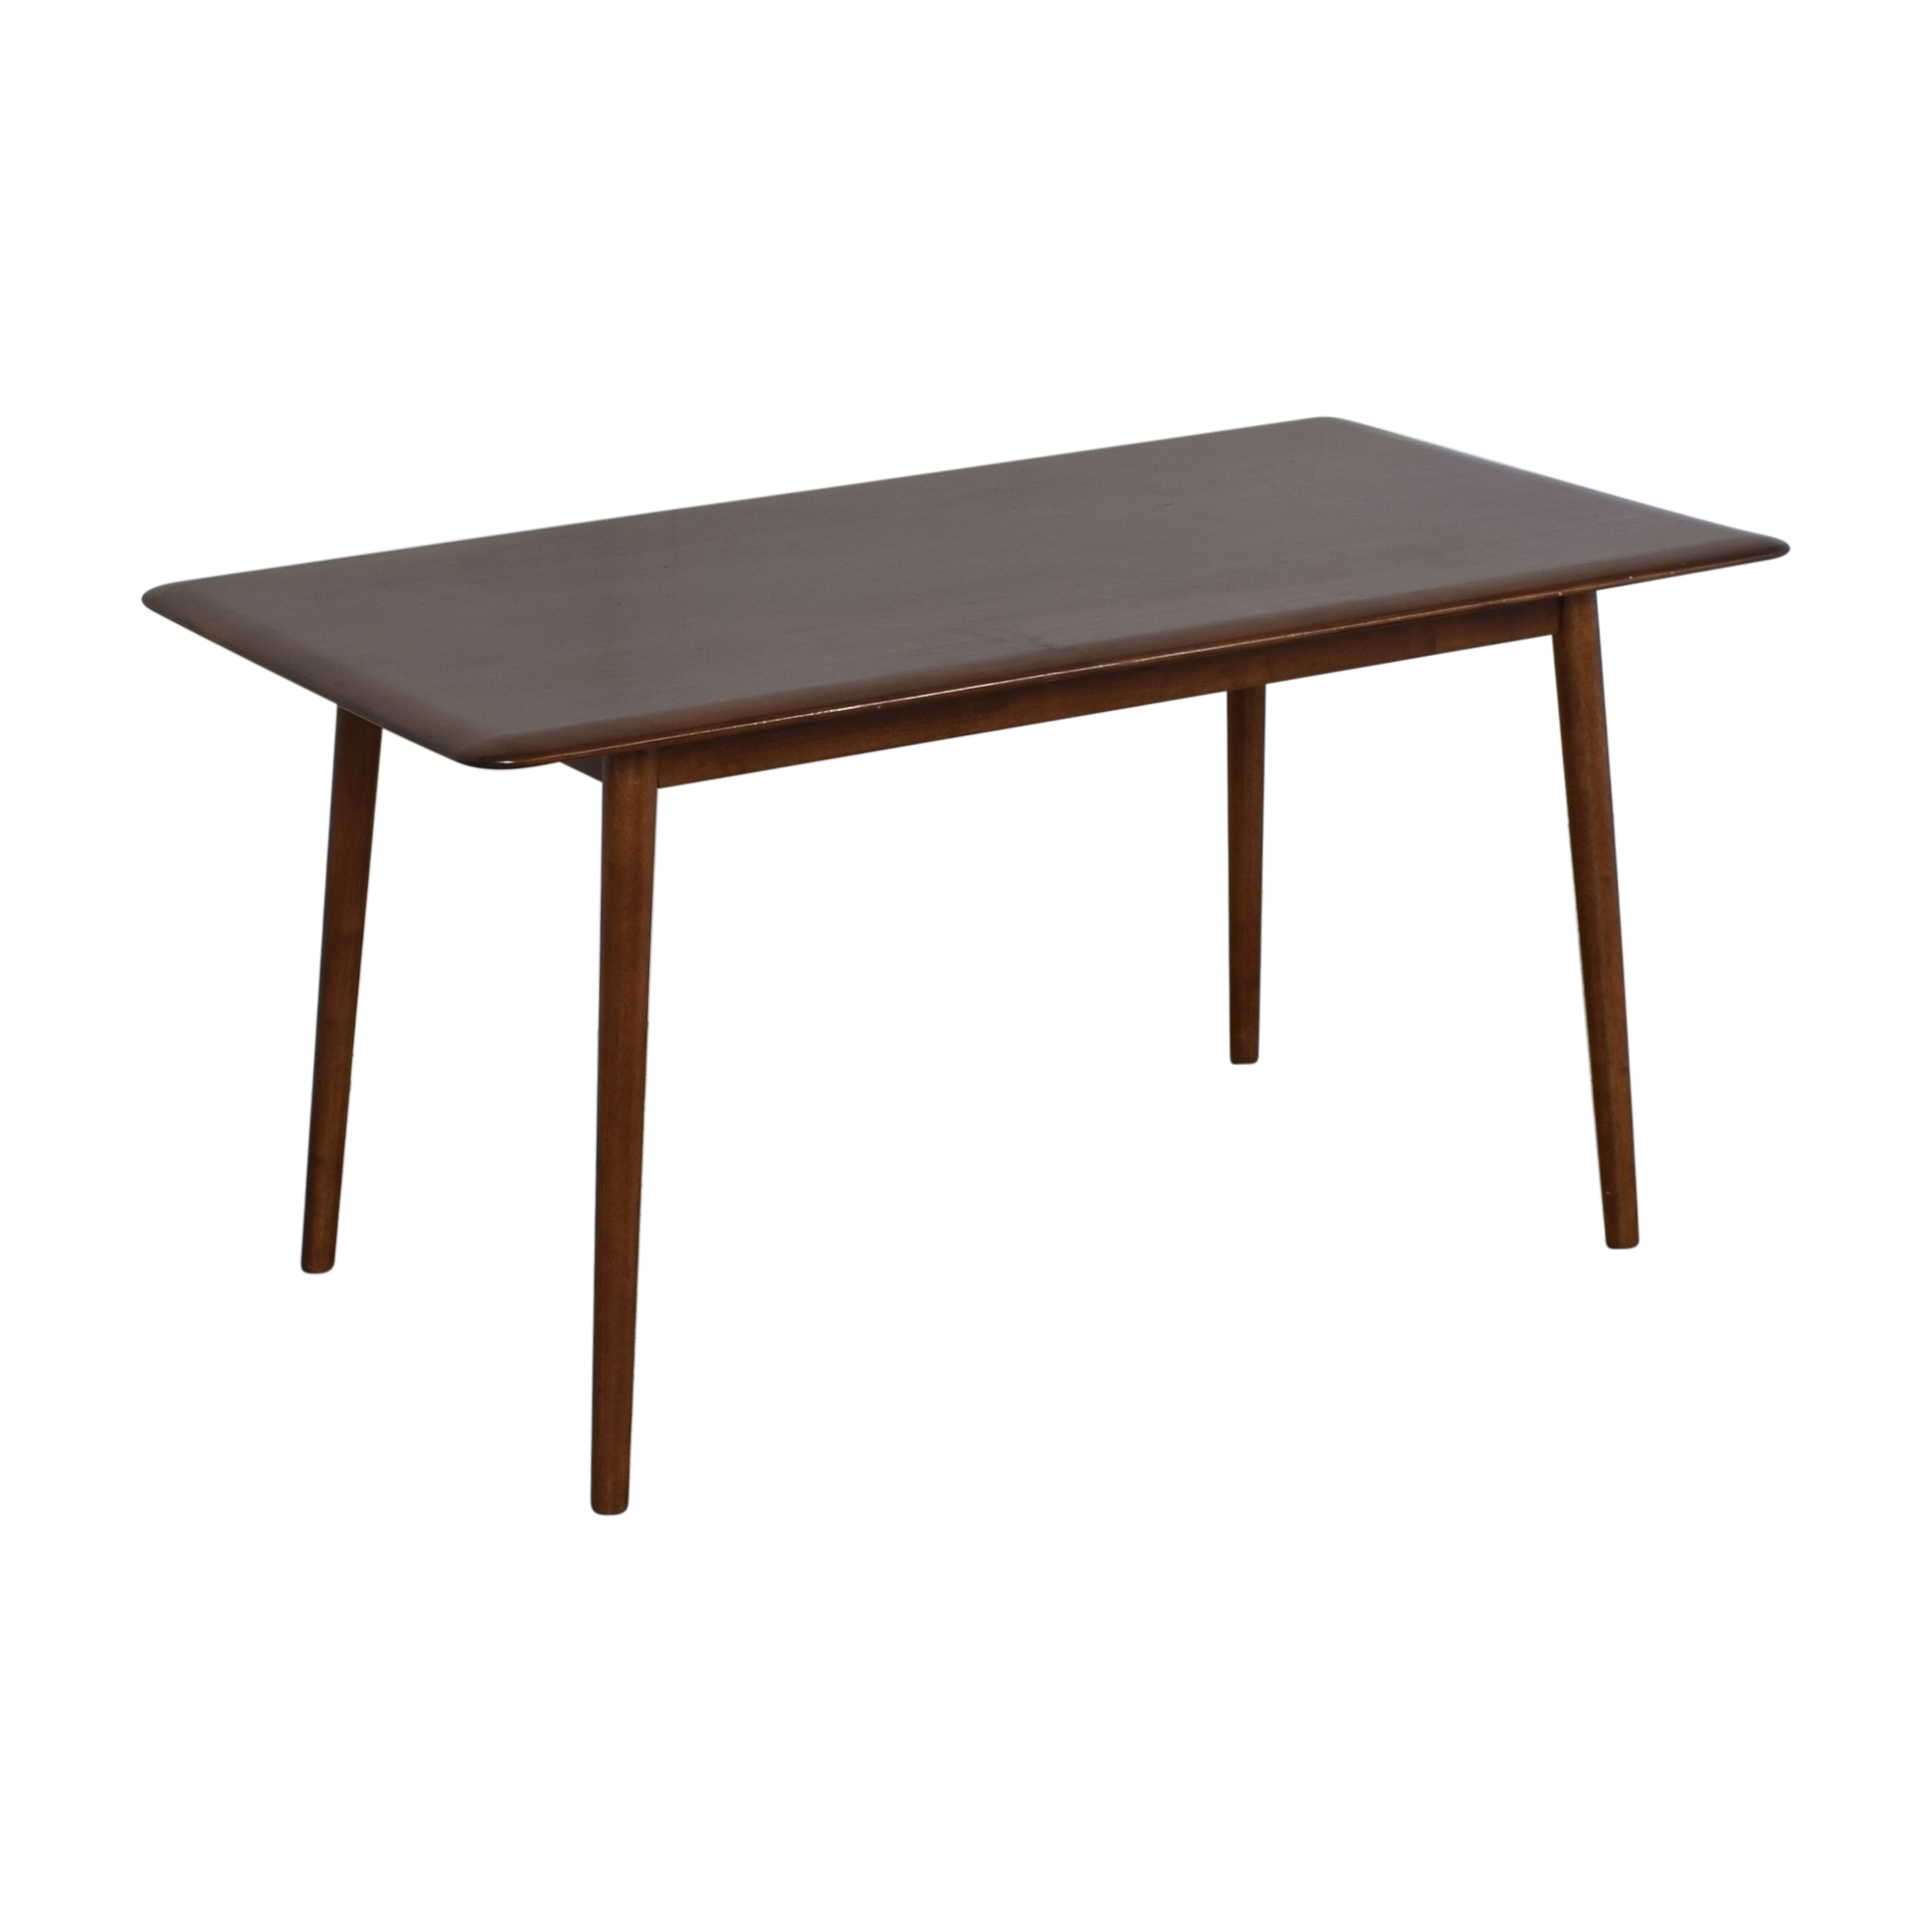 West Elm West Elm Lena Mid-Century Dining Table for sale